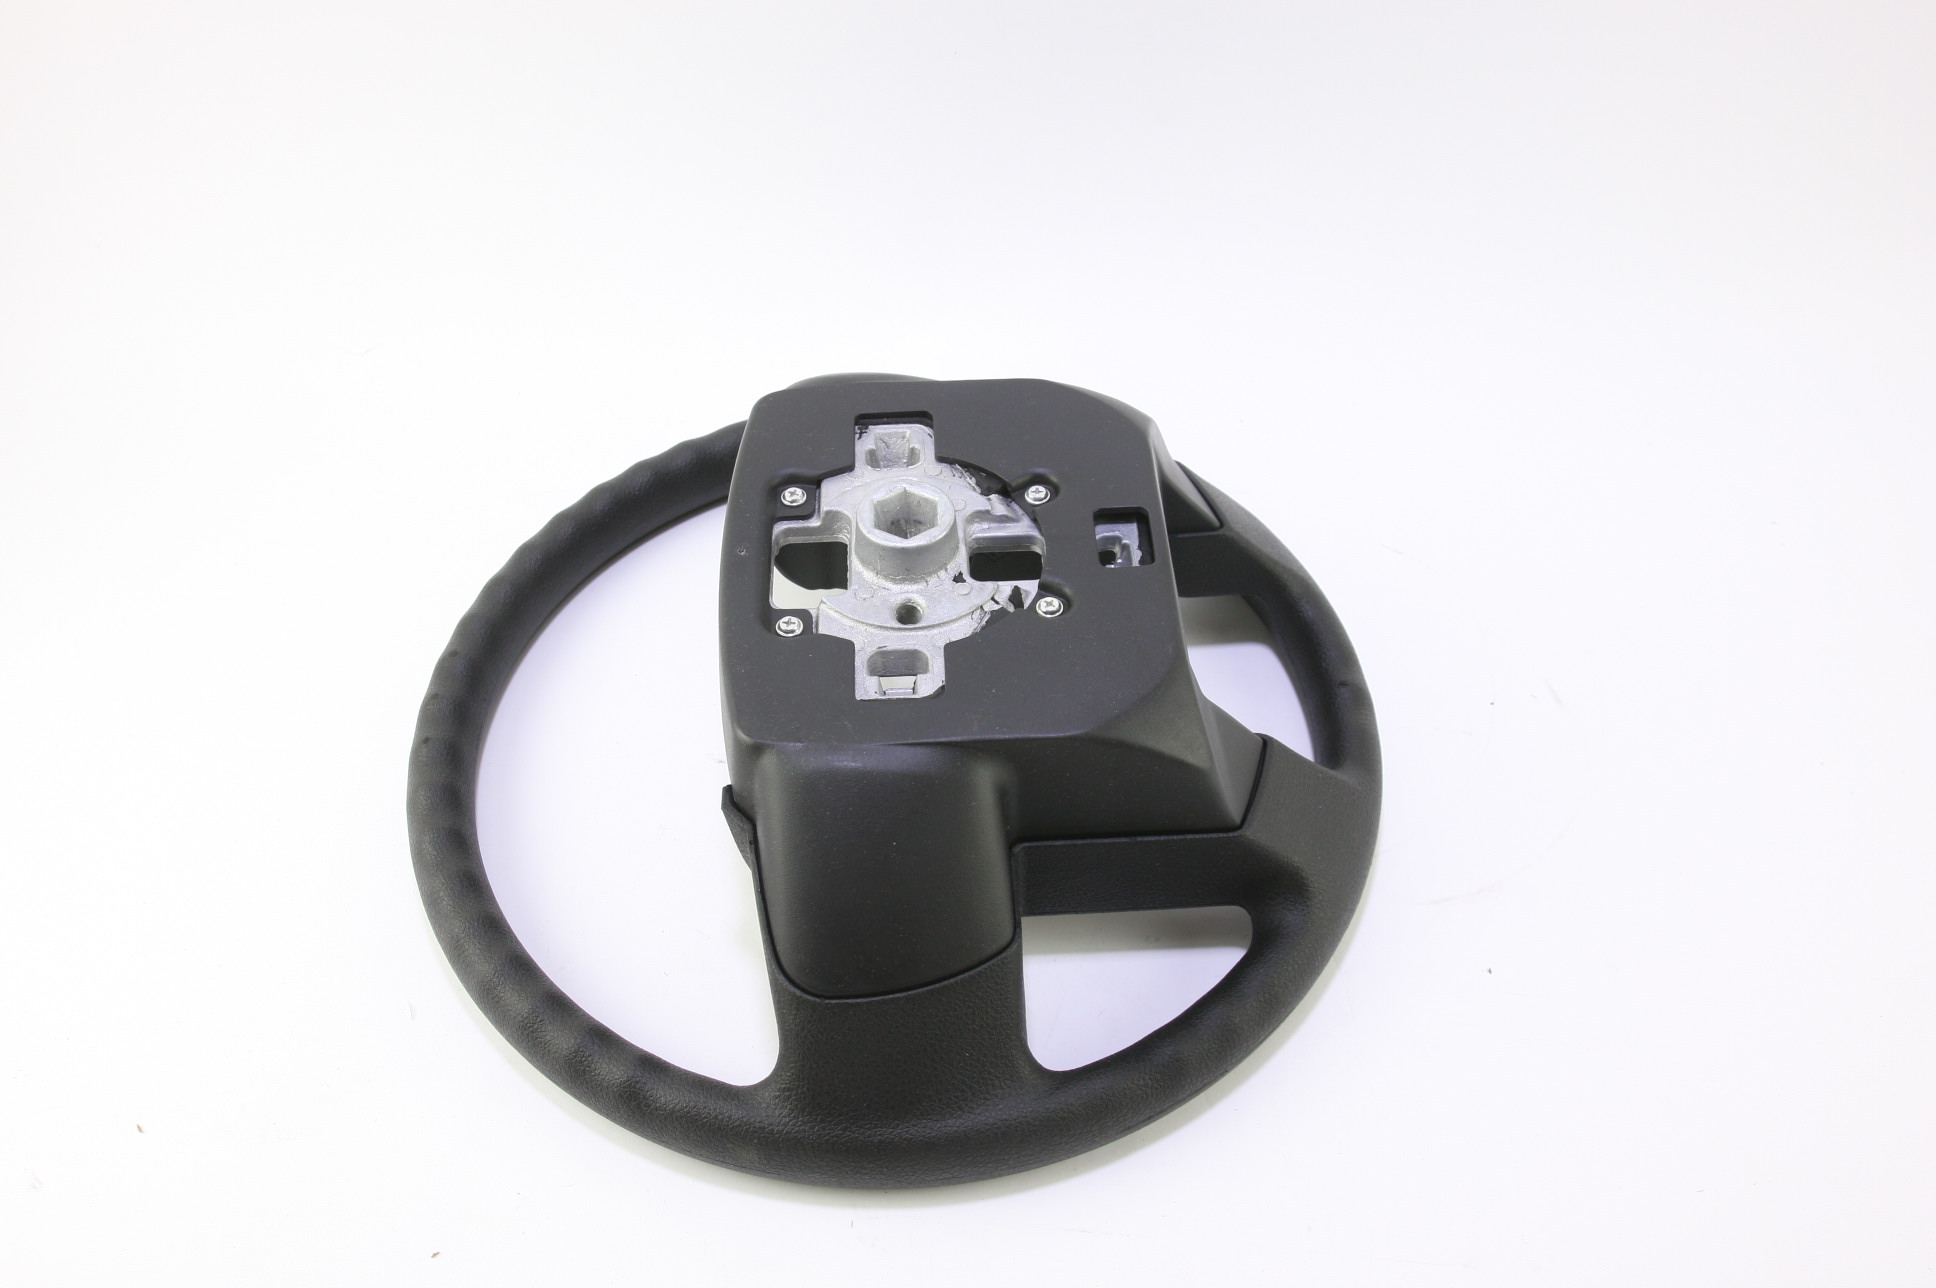 ** New OEM BC3Z3600CC Ford 11-12 F-250 Super Duty Steering Wheel Free Shipping - image 7